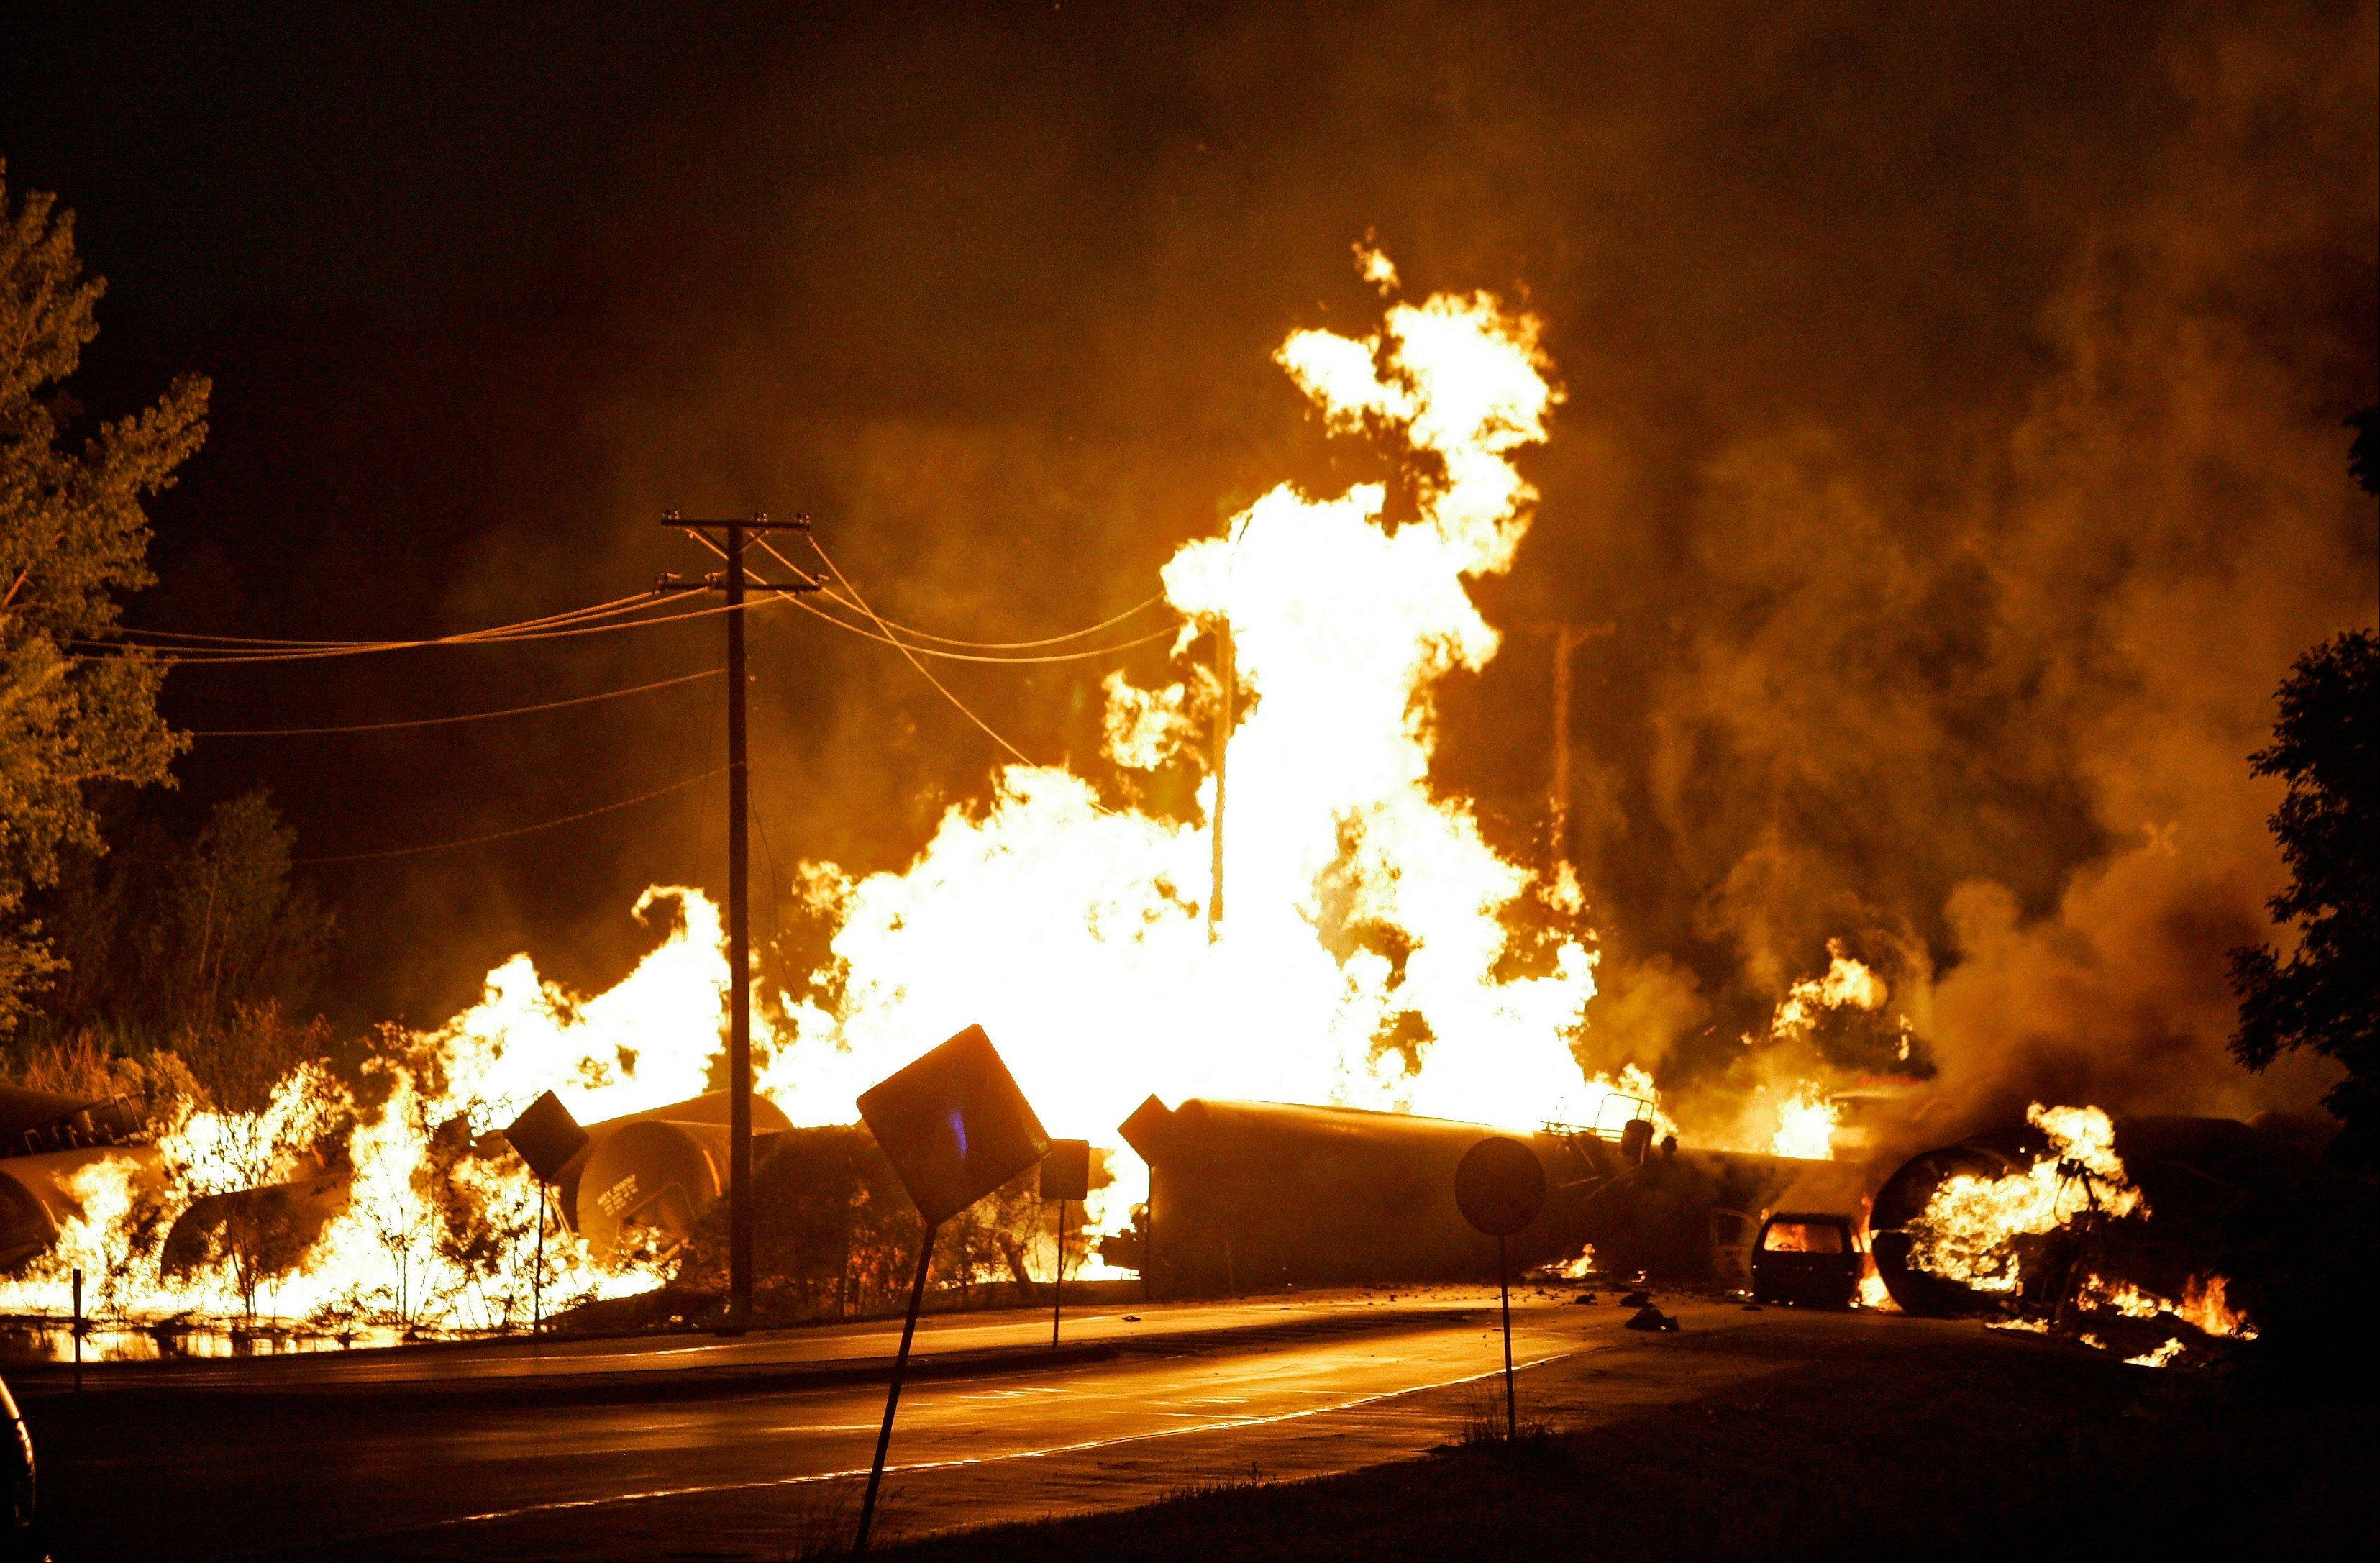 In this June 19, 2009 file photo, a car is seen engulfed in flames from rail cars loaded with ethanol that derailed in Rockford, Ill. A Rockford woman died as she tried to flee the derailment. For two decades, one of the nation�s most common types of rail tanker, known as a DOT-111, has been allowed to haul hazardous liquids from coast to coast even though transportation officials were aware of a dangerous design flaw that almost guarantees the car will tear open in an accident.